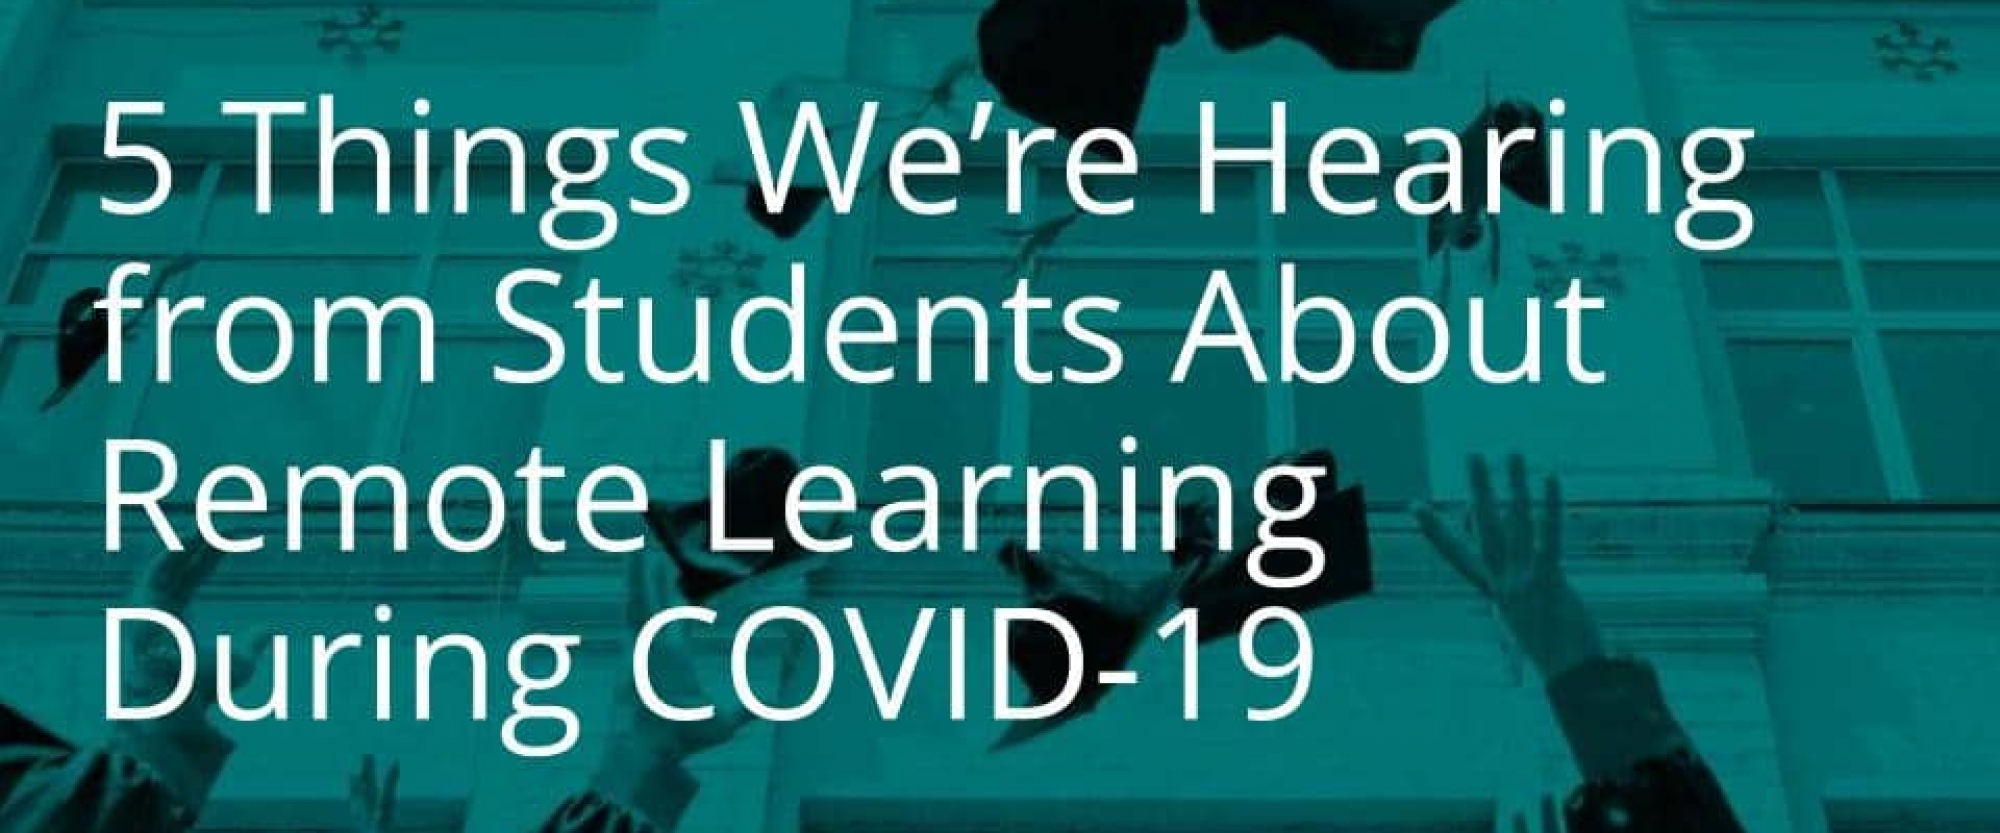 5 Things We're Hearing from Students About Remote Learning During COVID-19